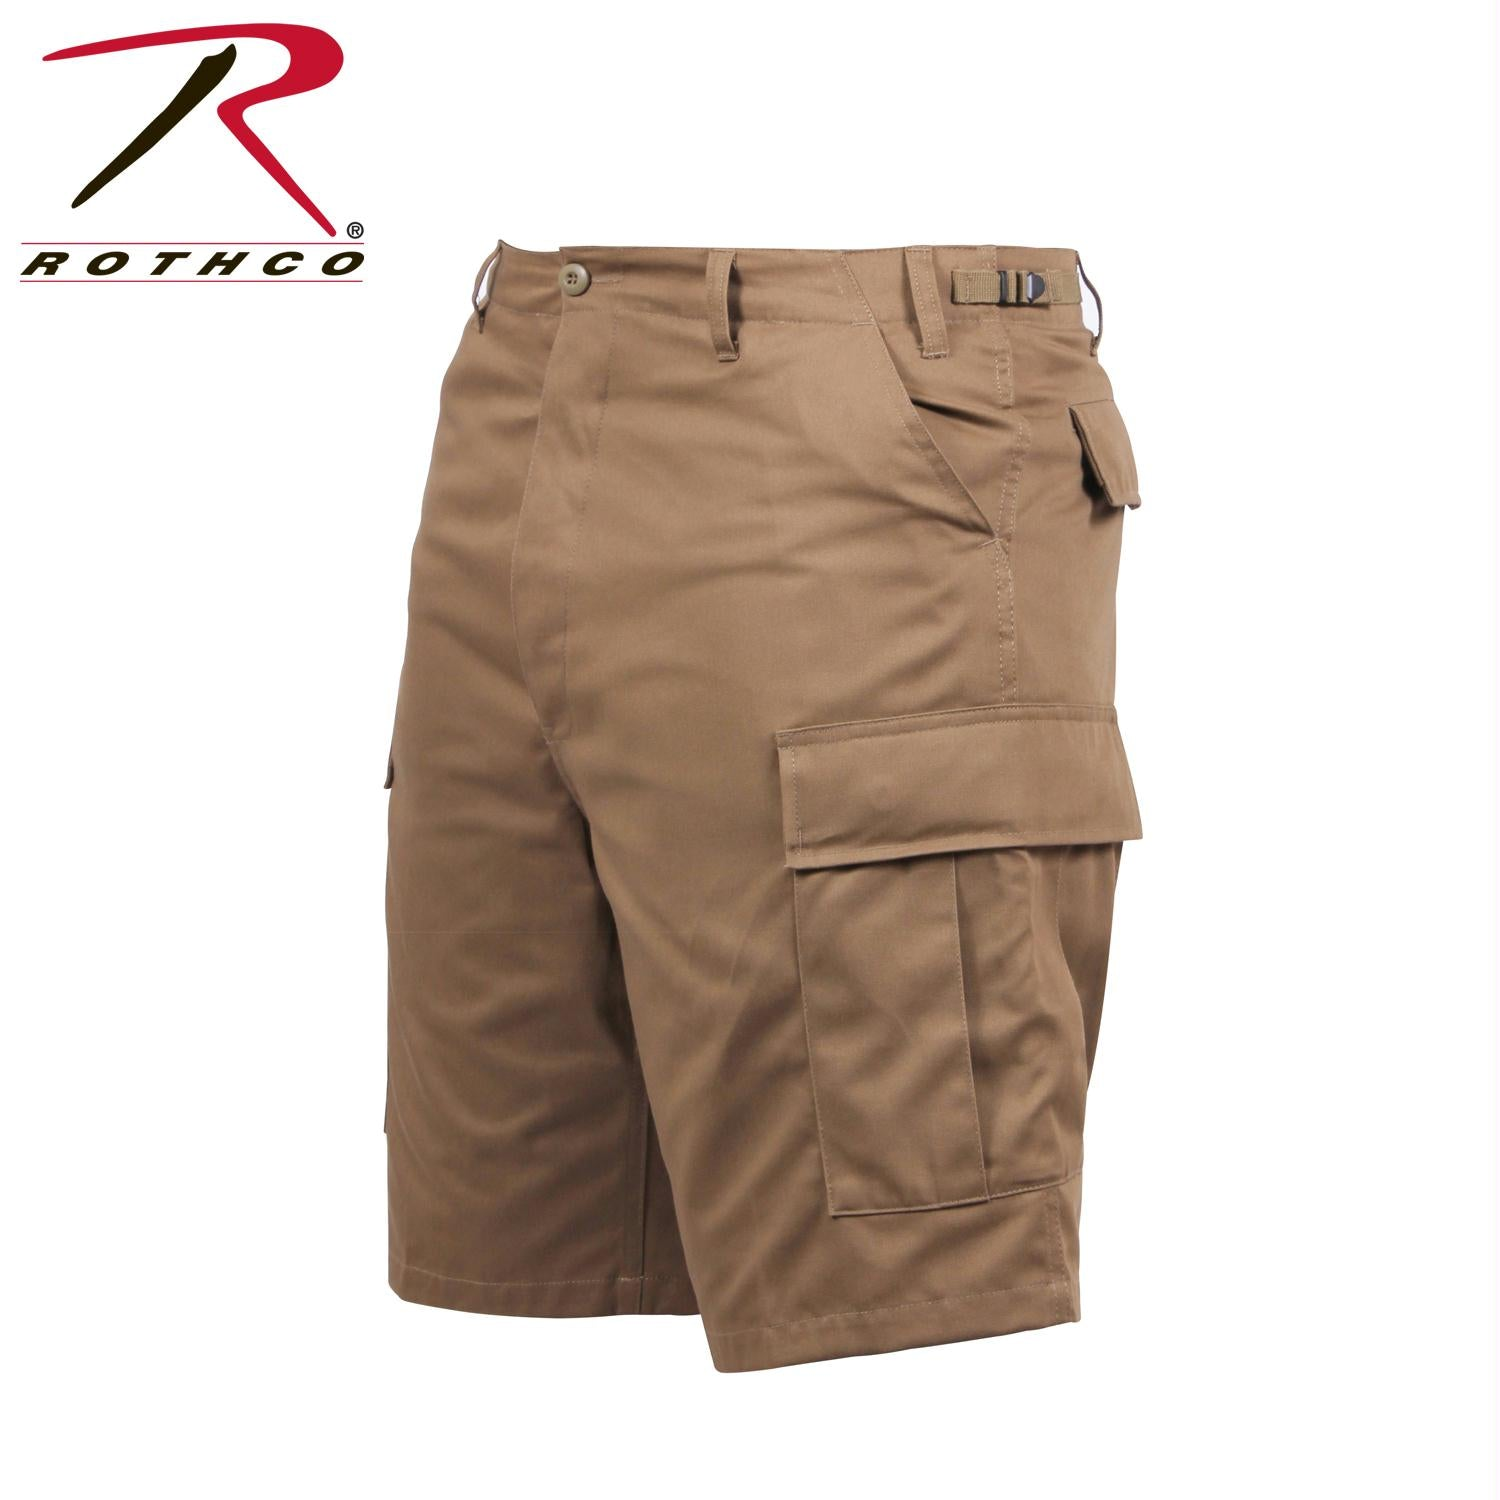 Rothco BDU Shorts - Coyote Brown / S